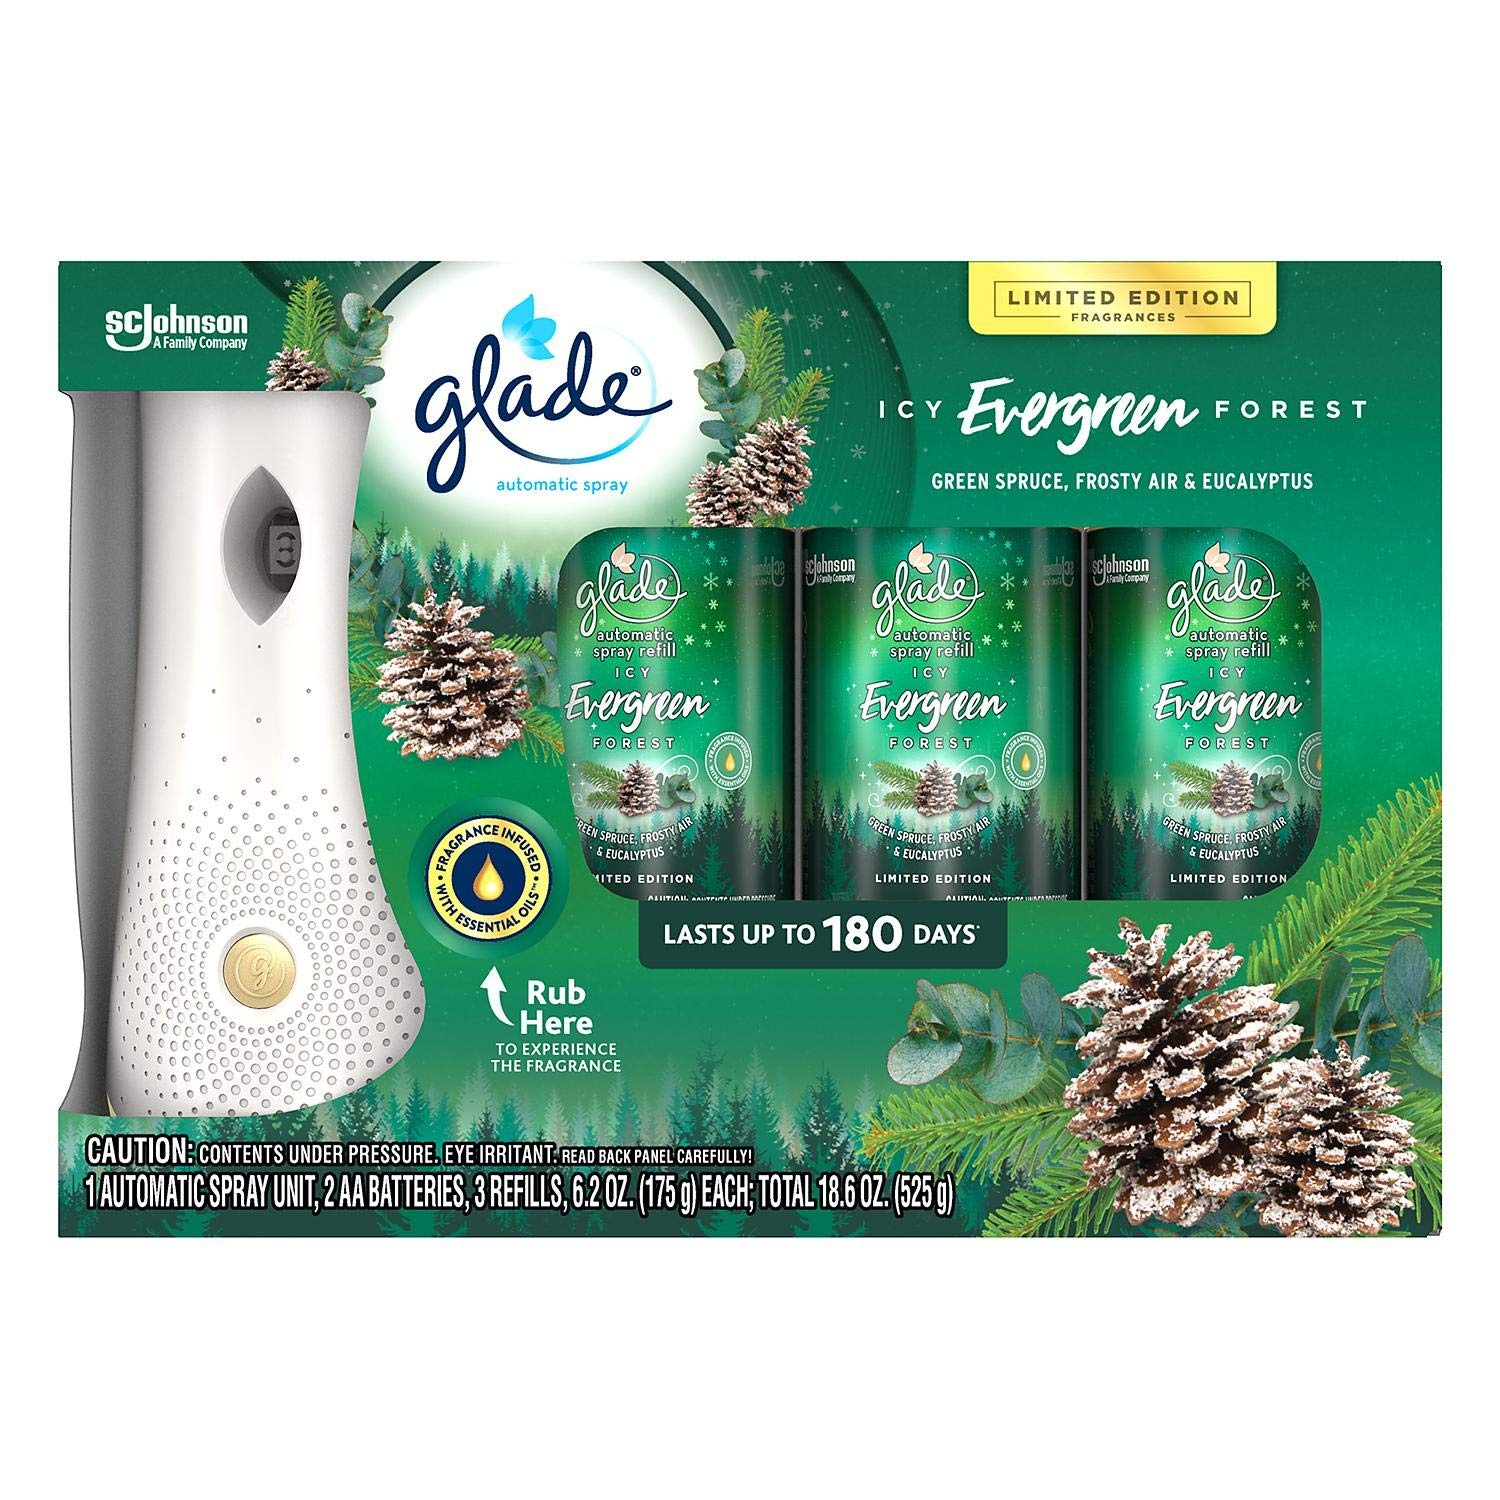 Glade Automatic Spray Refill - Holiday Collection 2018 - Enchanted Evergreens - Net Wt. 6.2 OZ (175 g) Per Refill Can - Pack of 3 Refill Cans by Glade